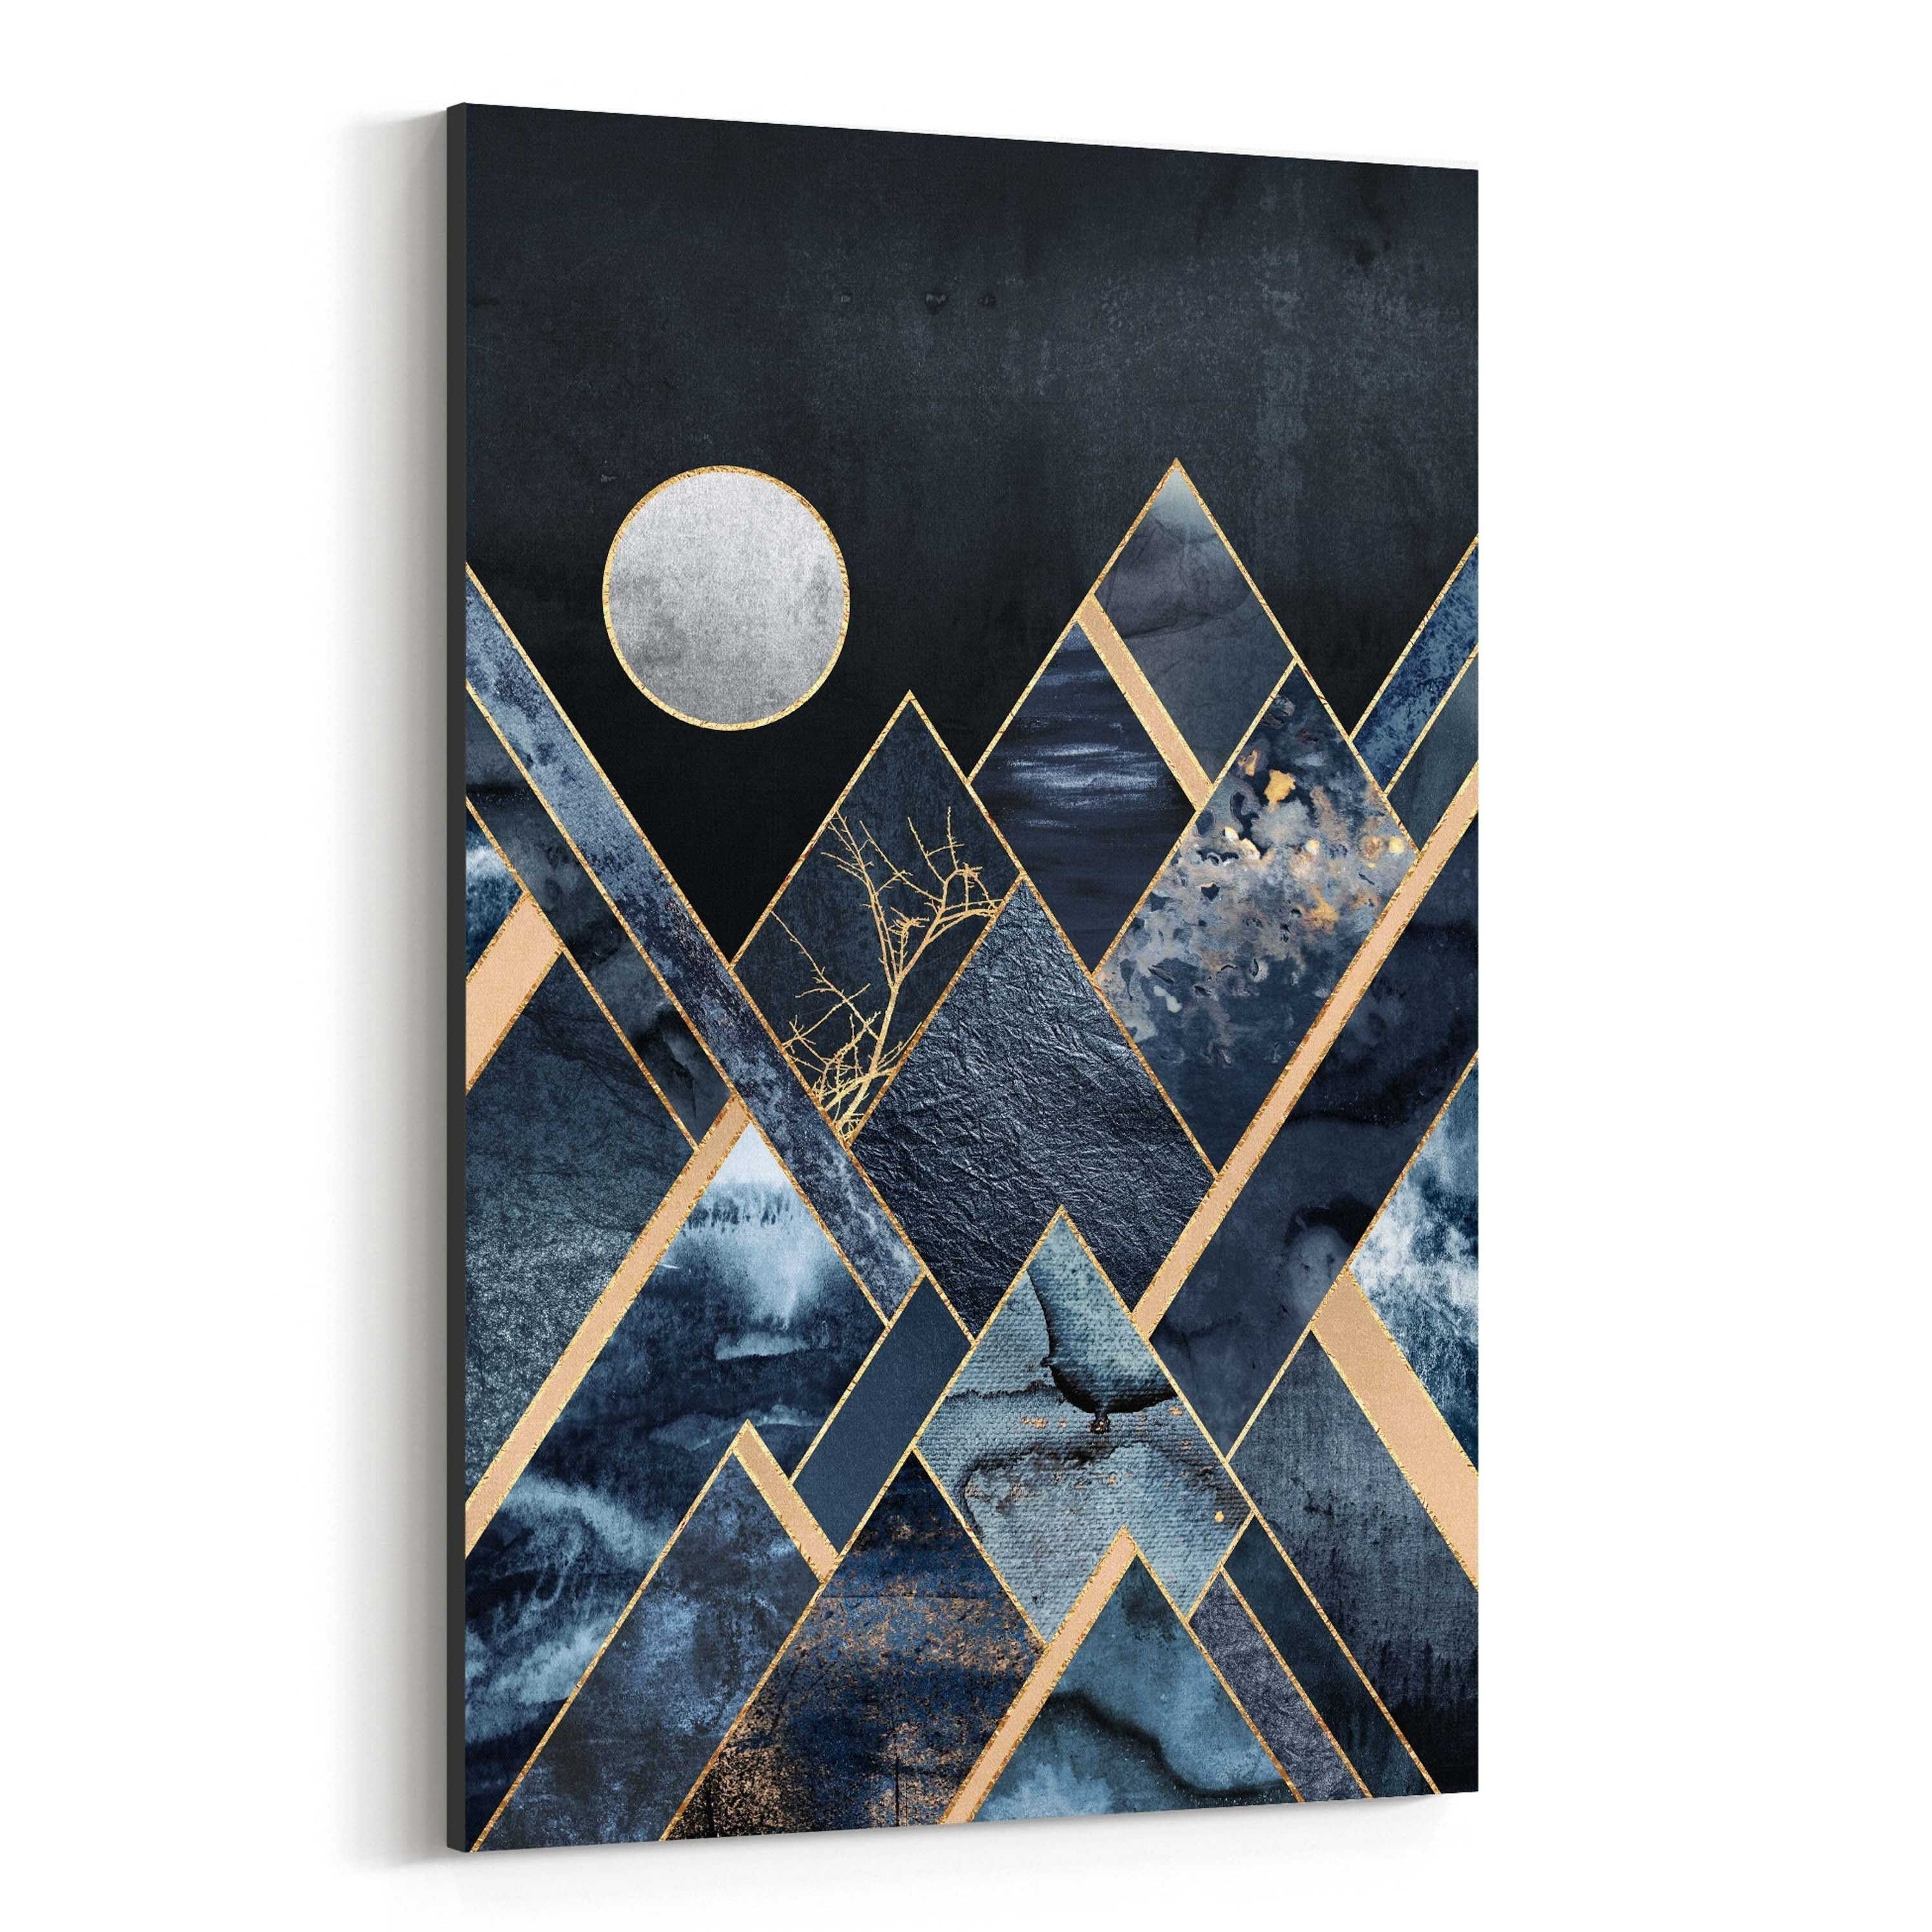 Noir Gallery Mountains Digital Geometric Canvas Wall Art Print 11 X 14 Mountain Art Print Mountain Art Abstract